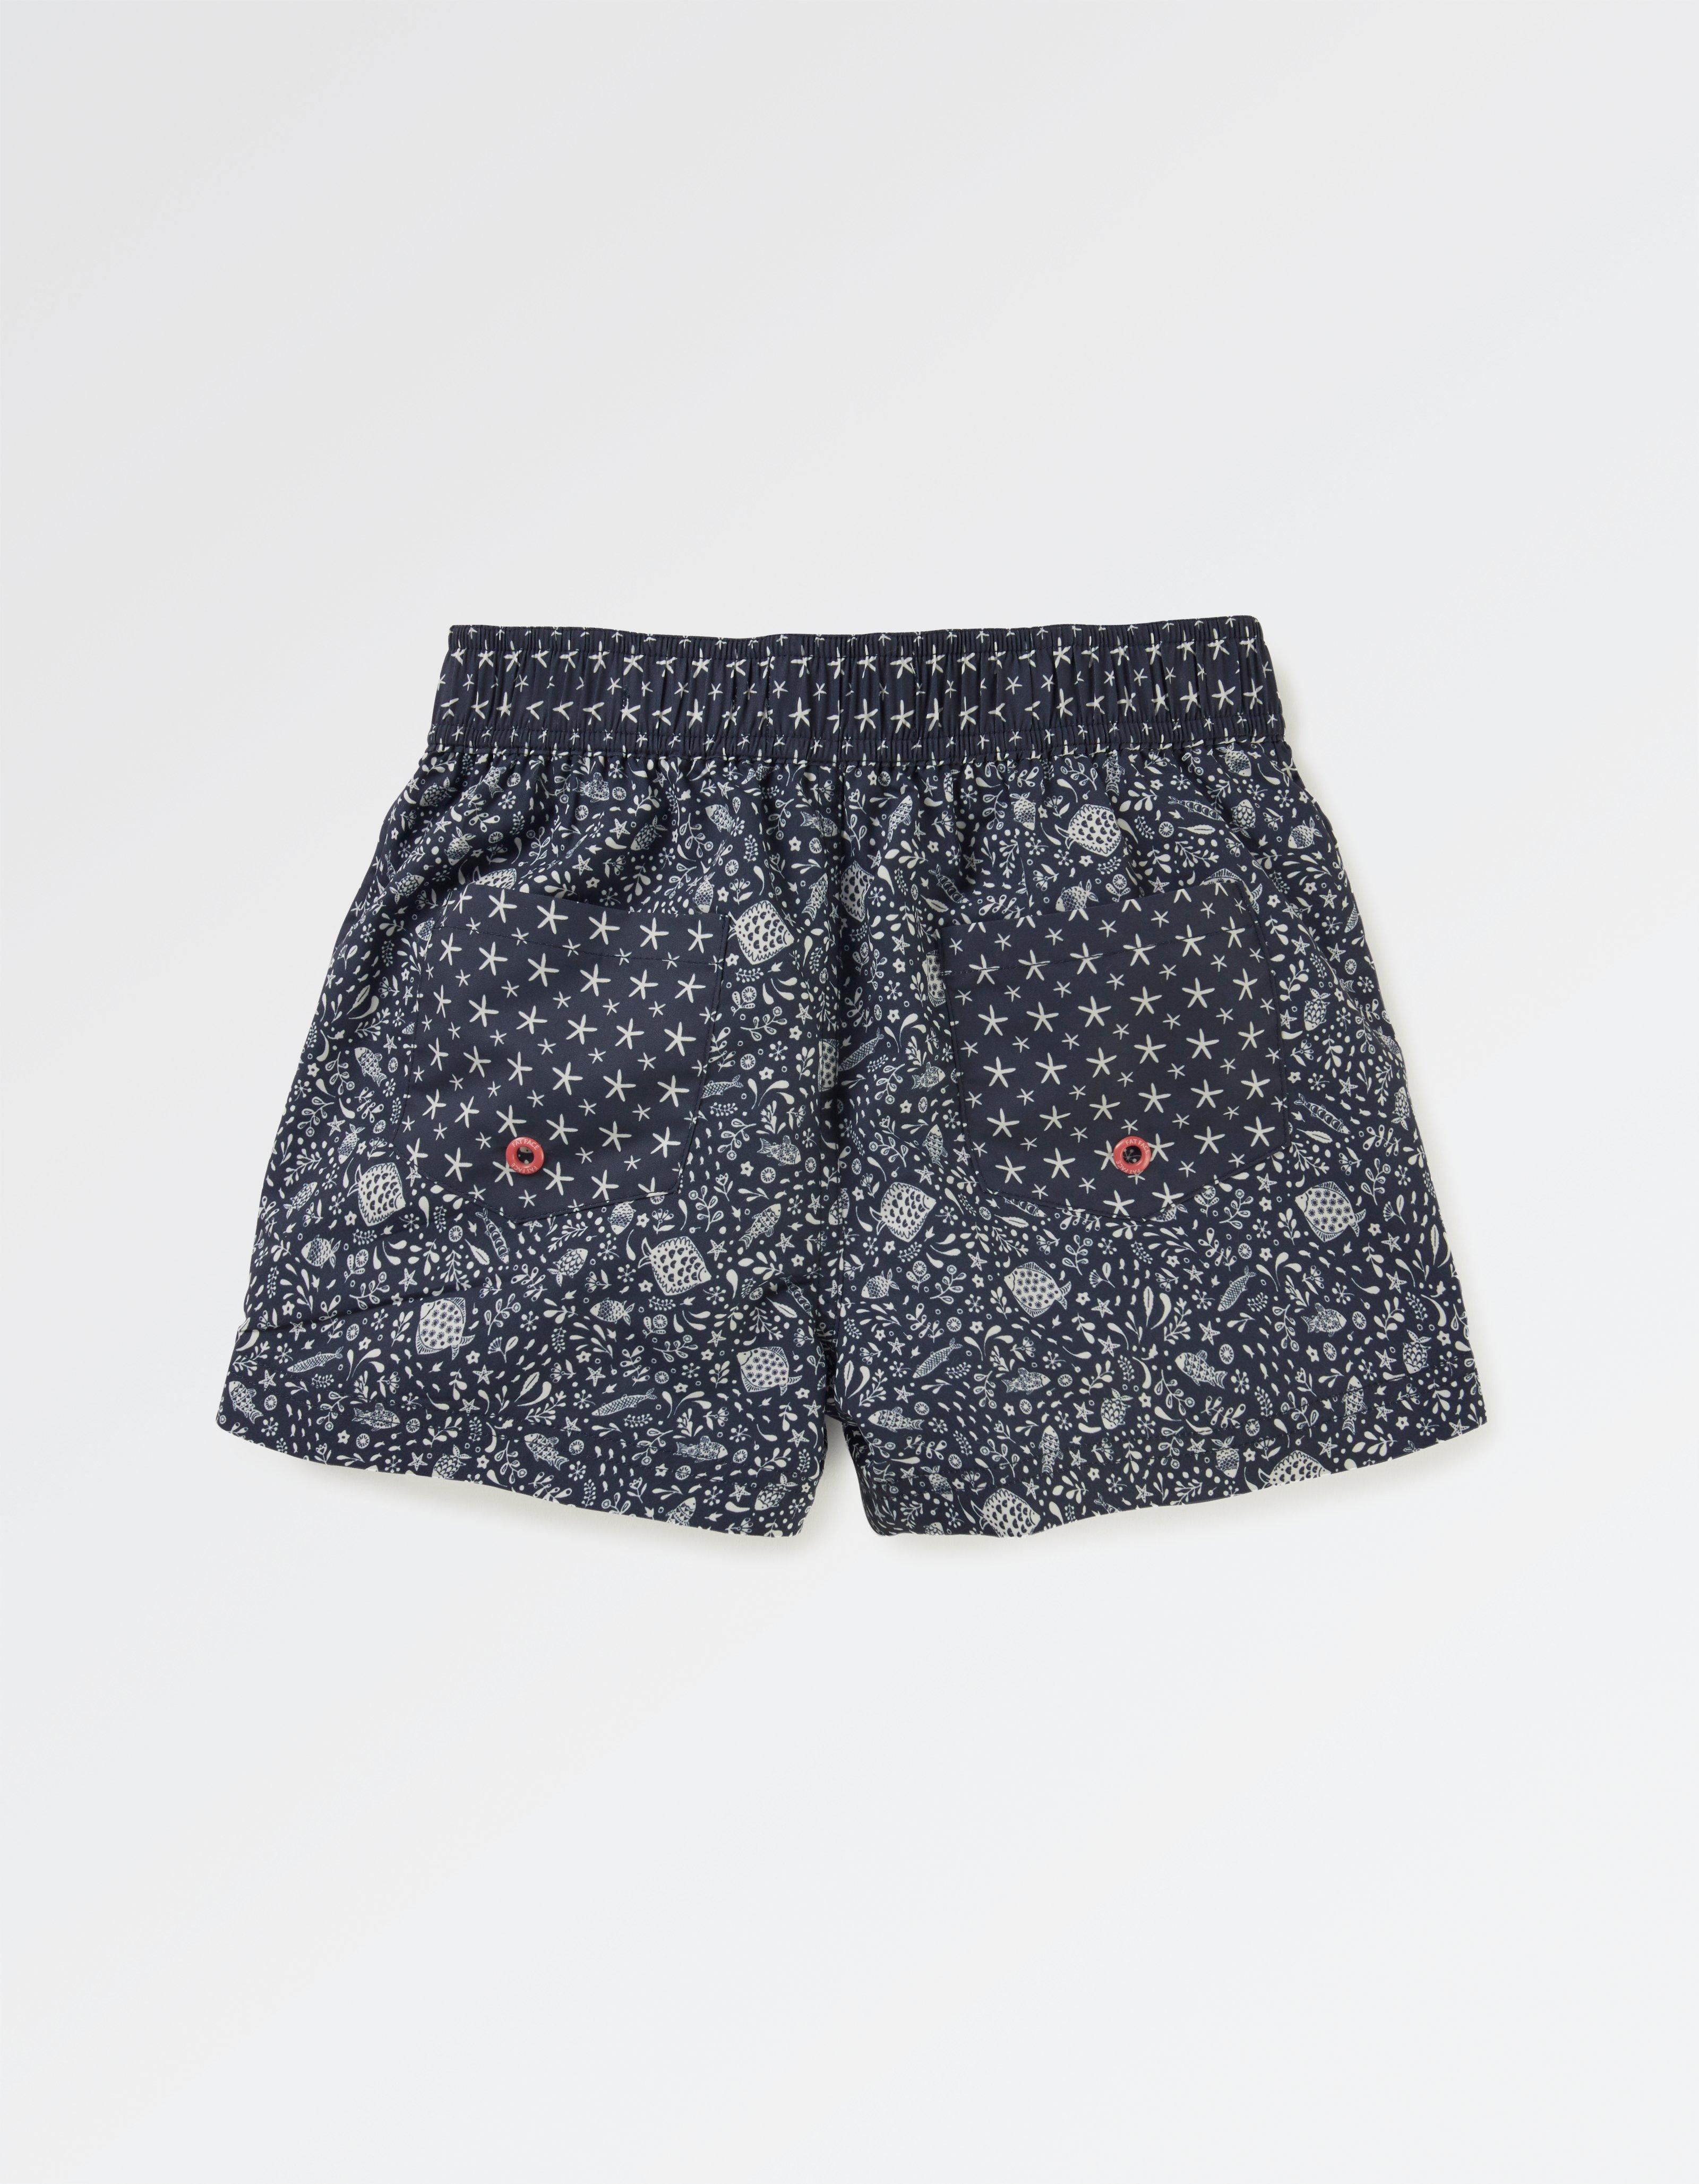 Floral Fish Board Shorts